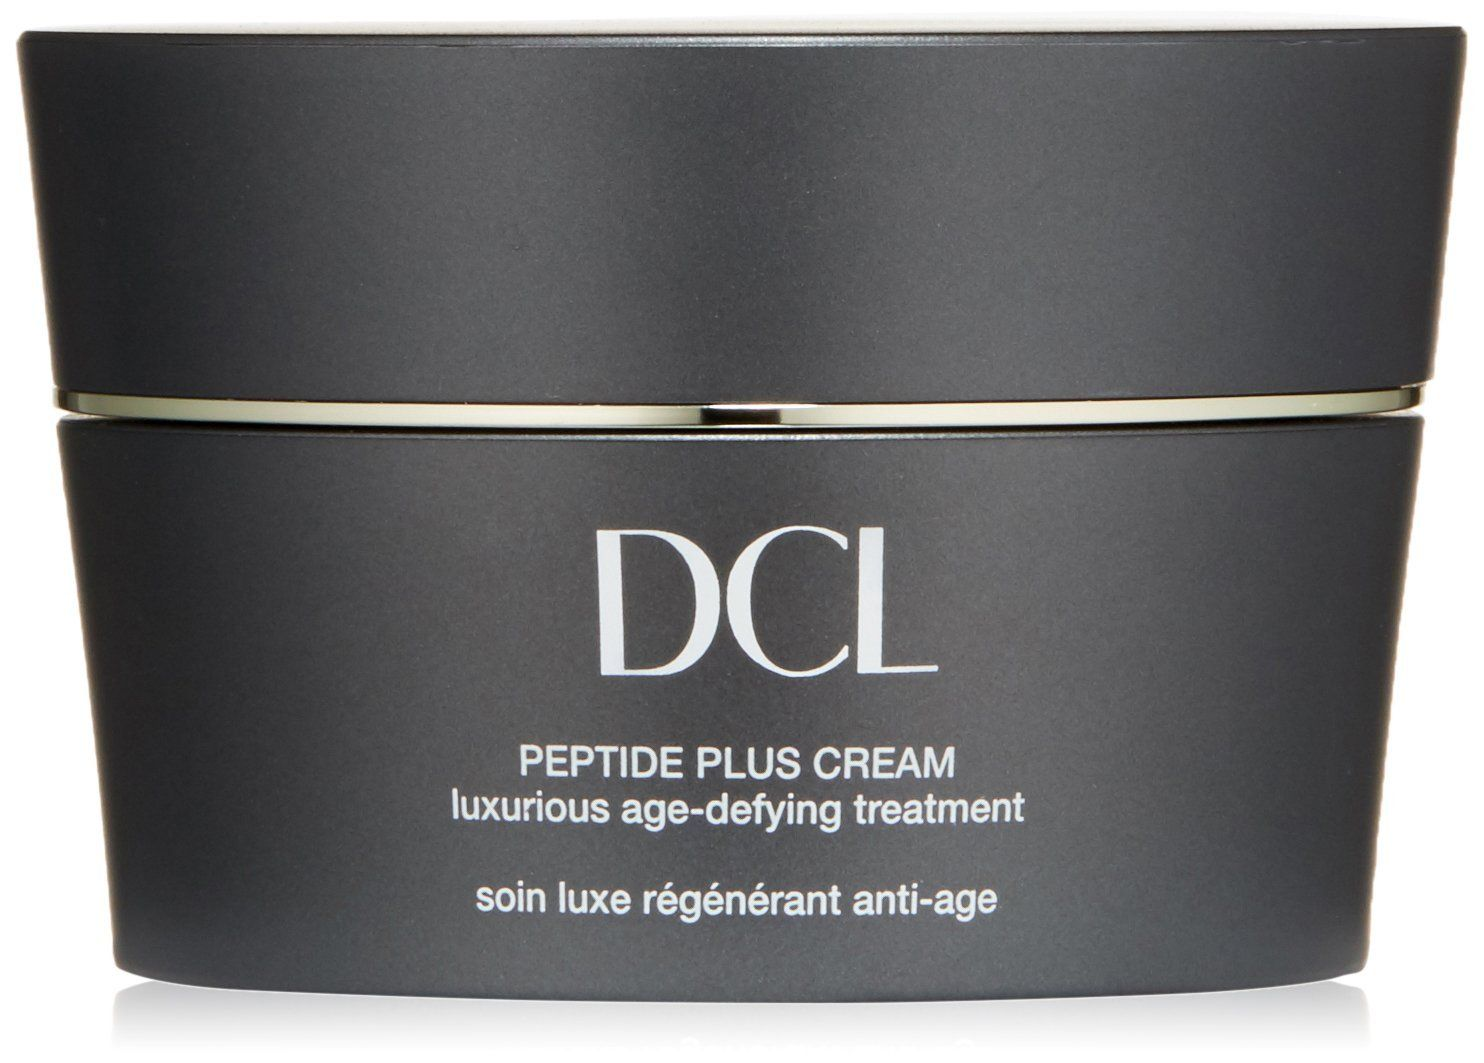 Dermatologic Cosmetic Laboratories Peptide Plus Cream 1 7 Fl Oz This Is An Amazon Affiliat Cosmetics Laboratory Professional Skin Care Products Peptides